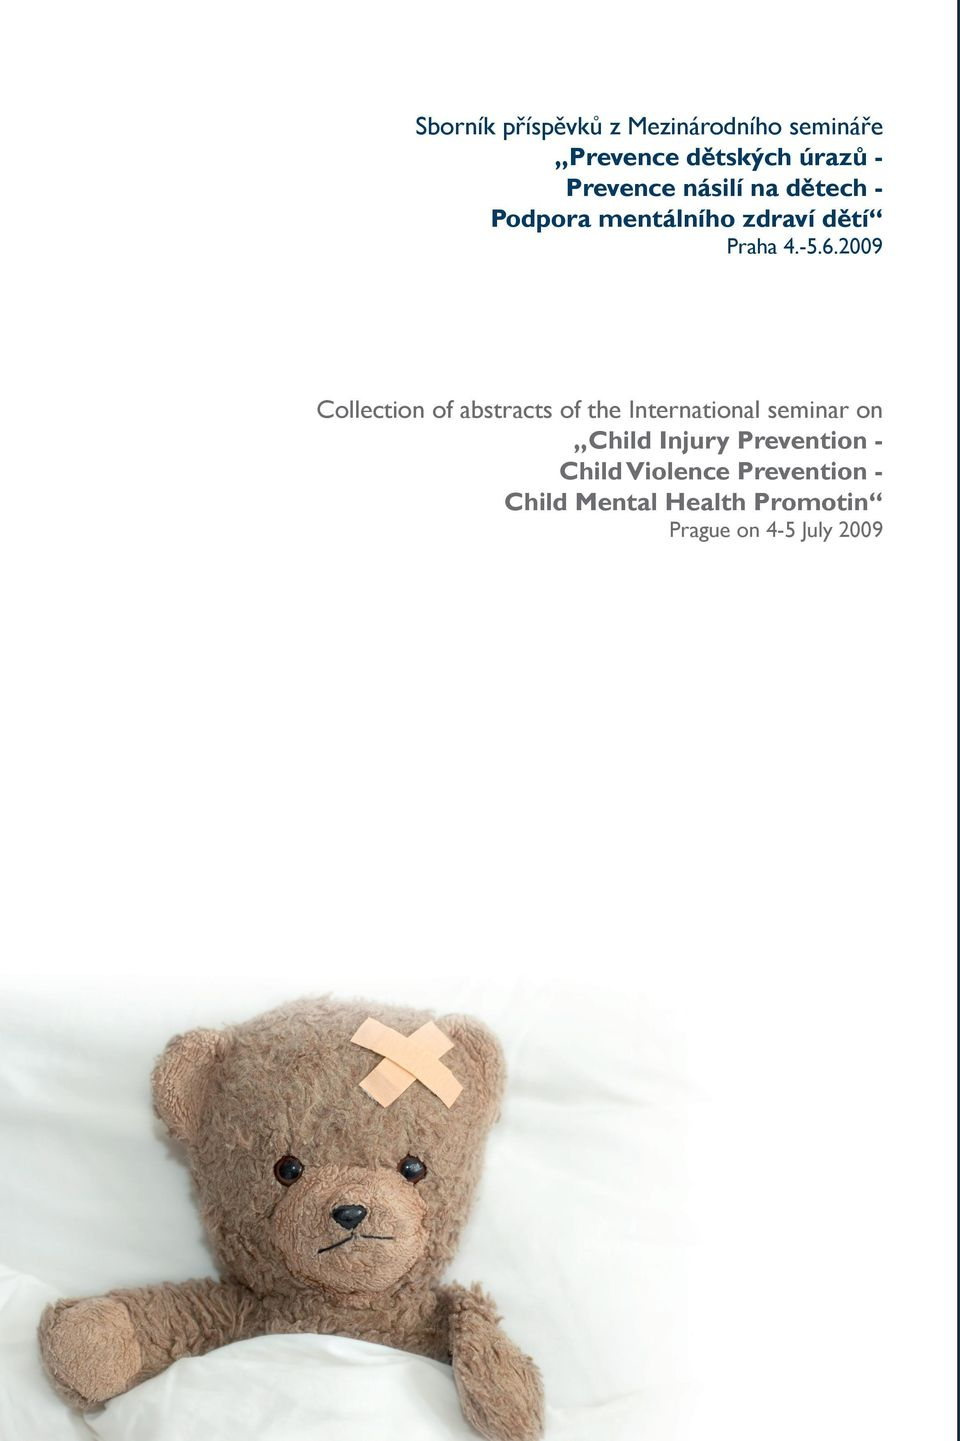 2009 Collection of abstracts of the International seminar on Child Injury